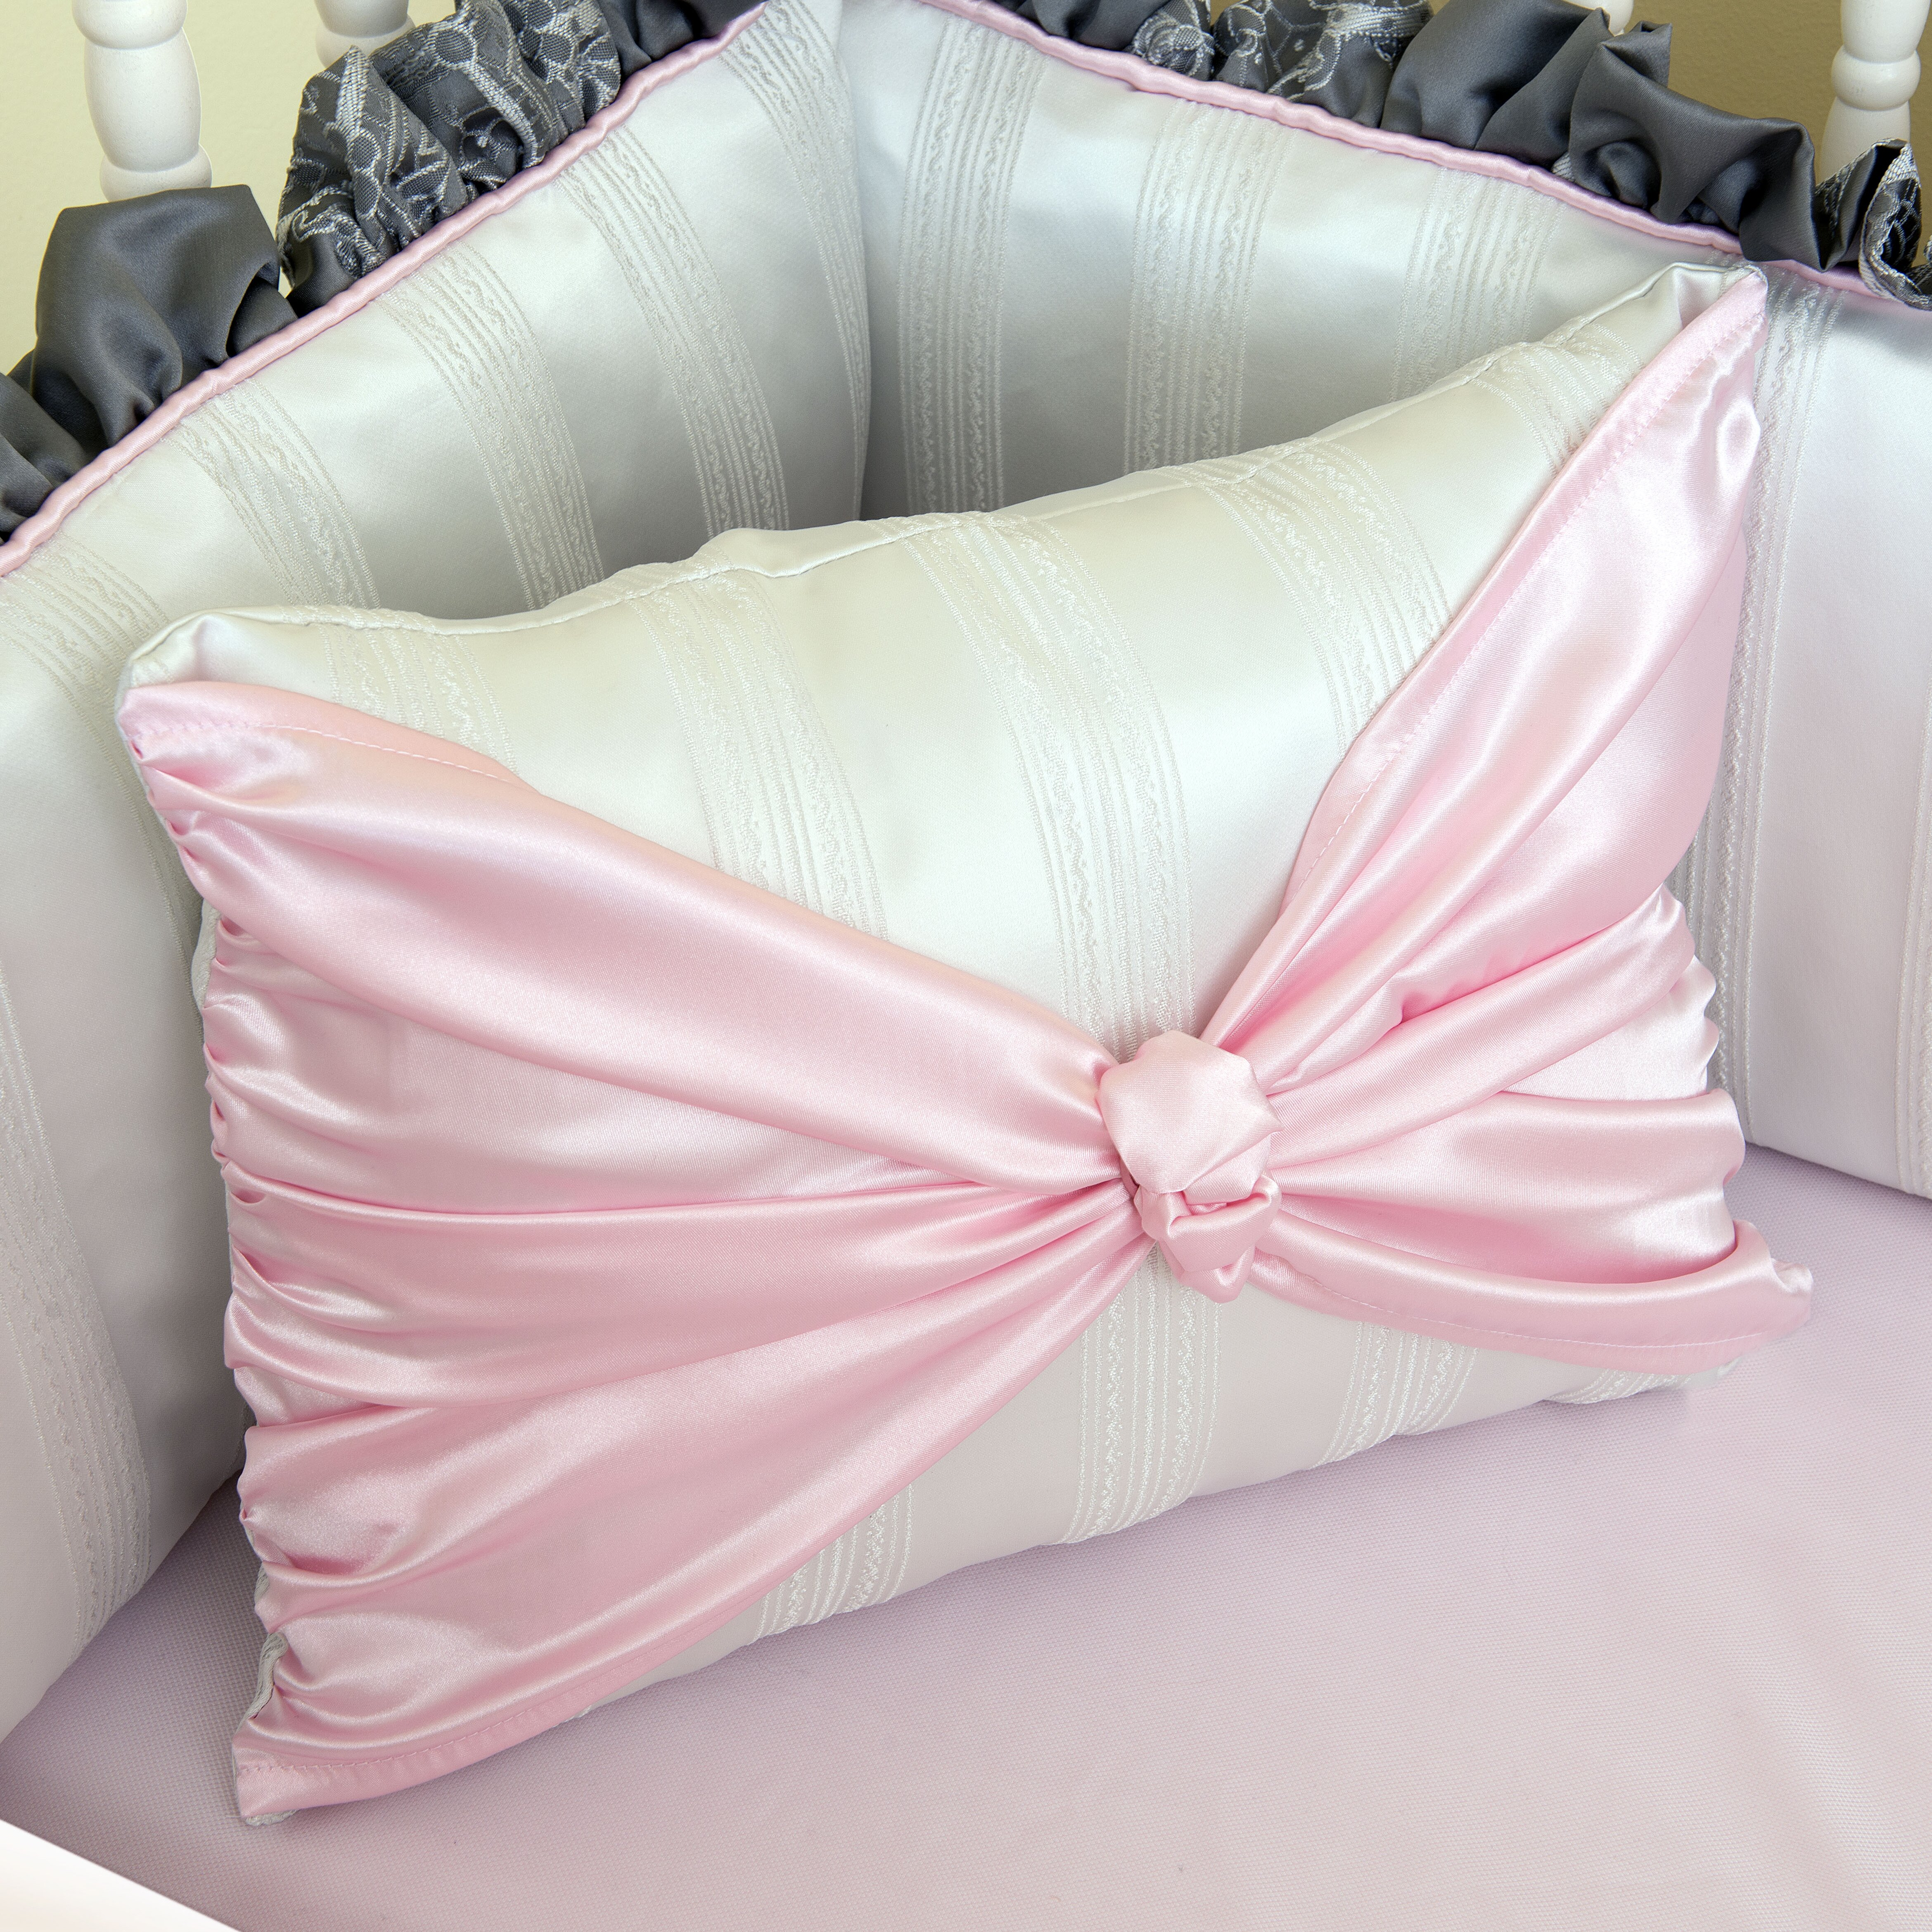 sophia bow pillow wayfair. Black Bedroom Furniture Sets. Home Design Ideas